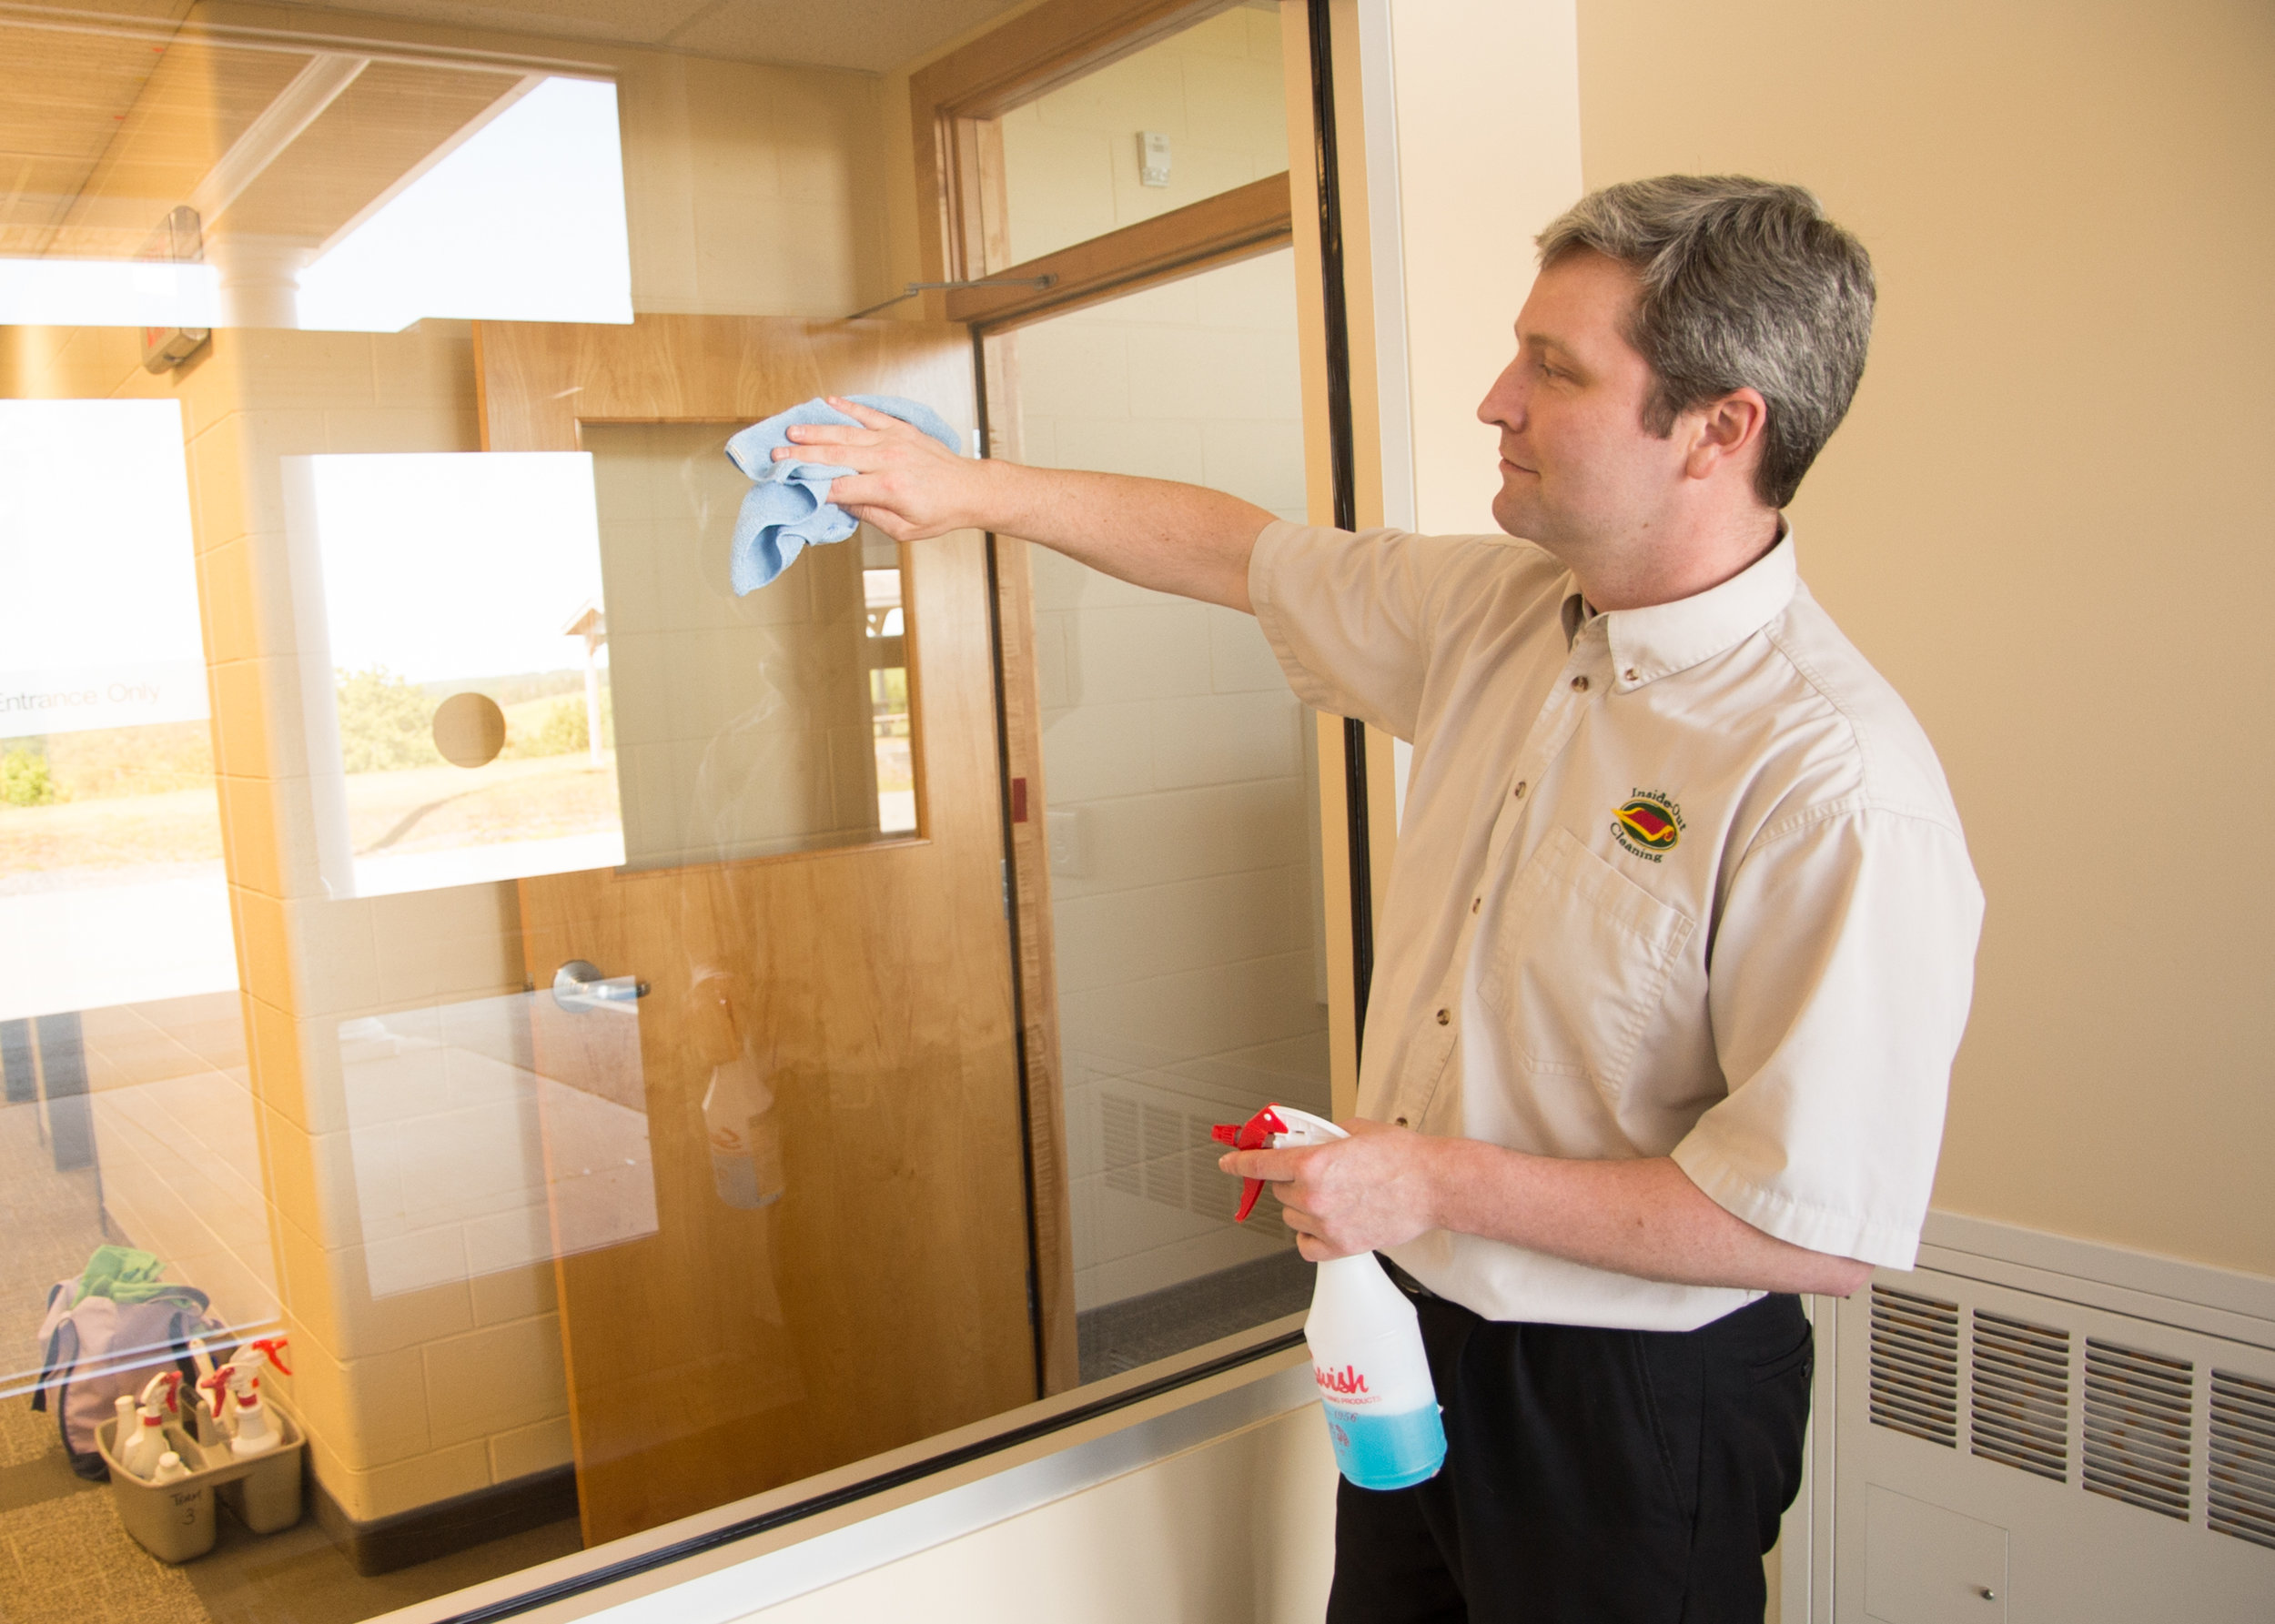 7 - Commercial Cleaning.jpg